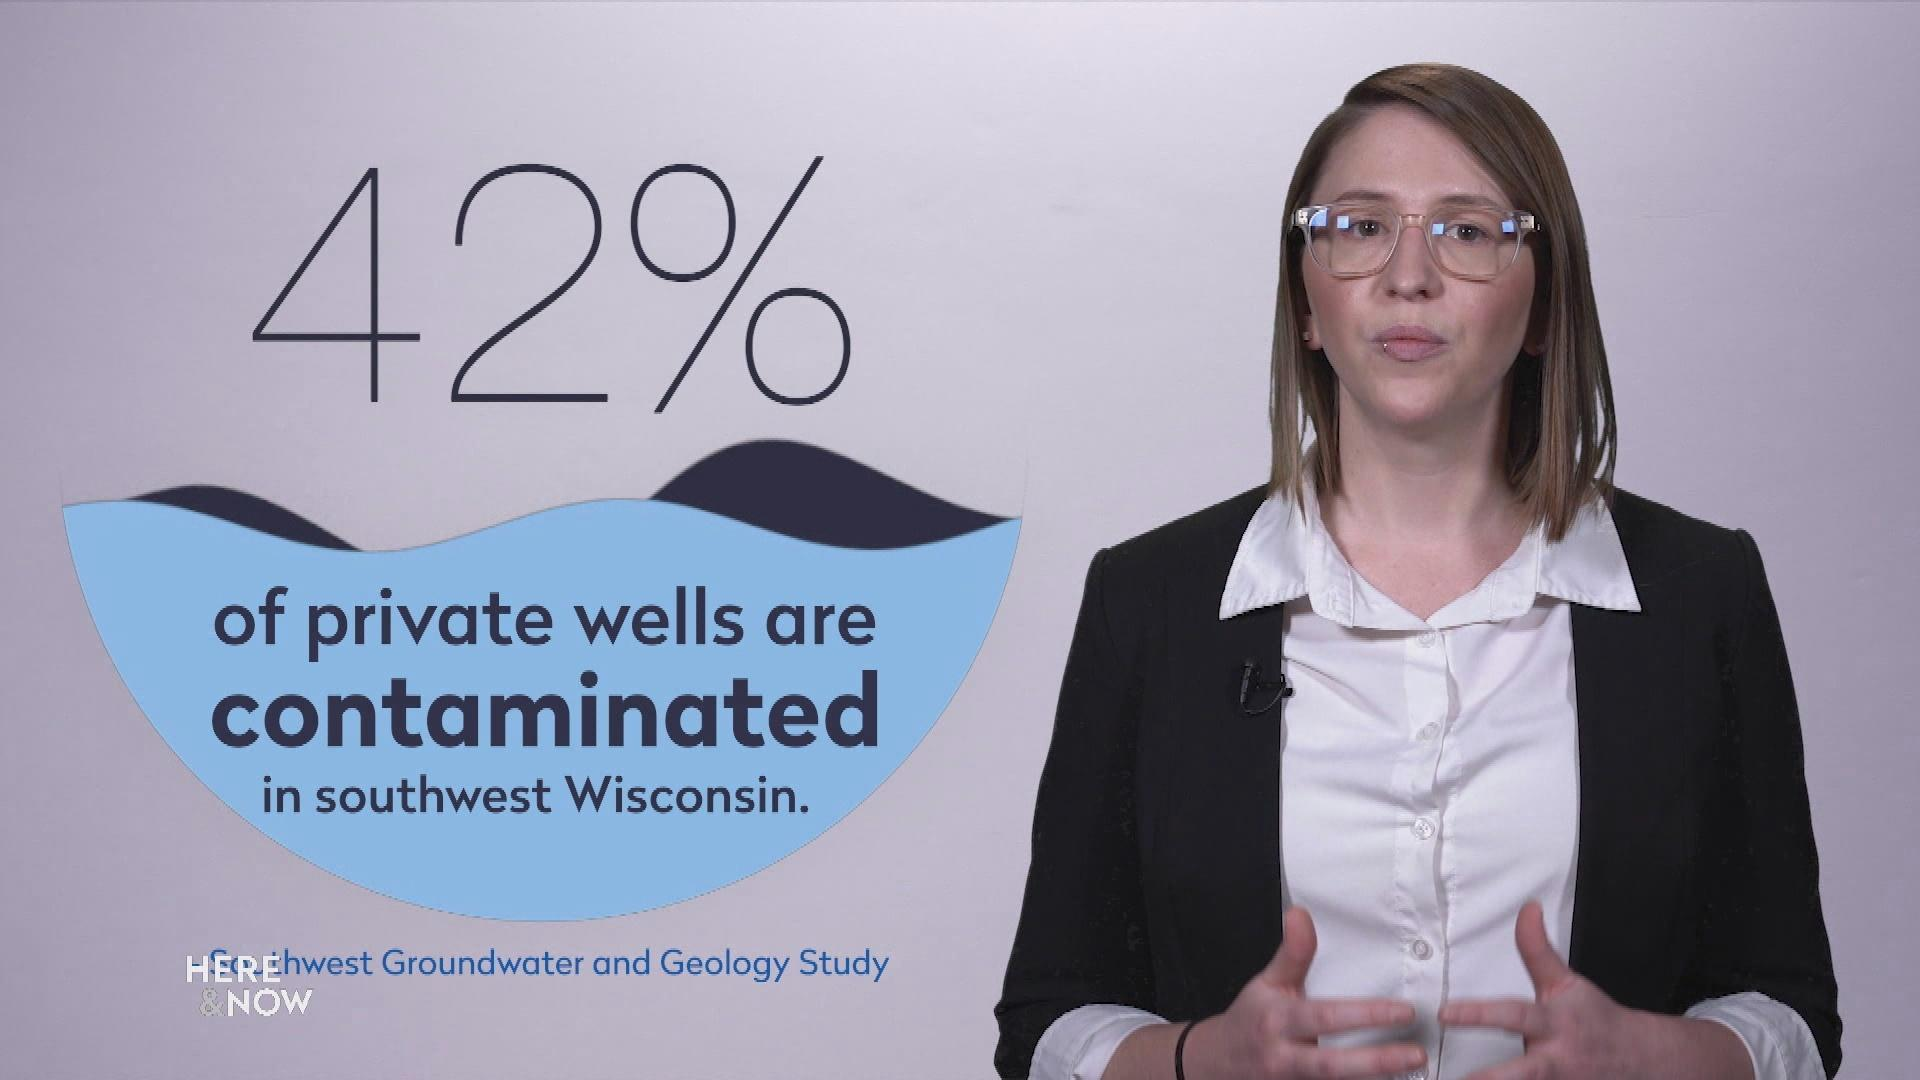 Fast Facts: Well Contamination